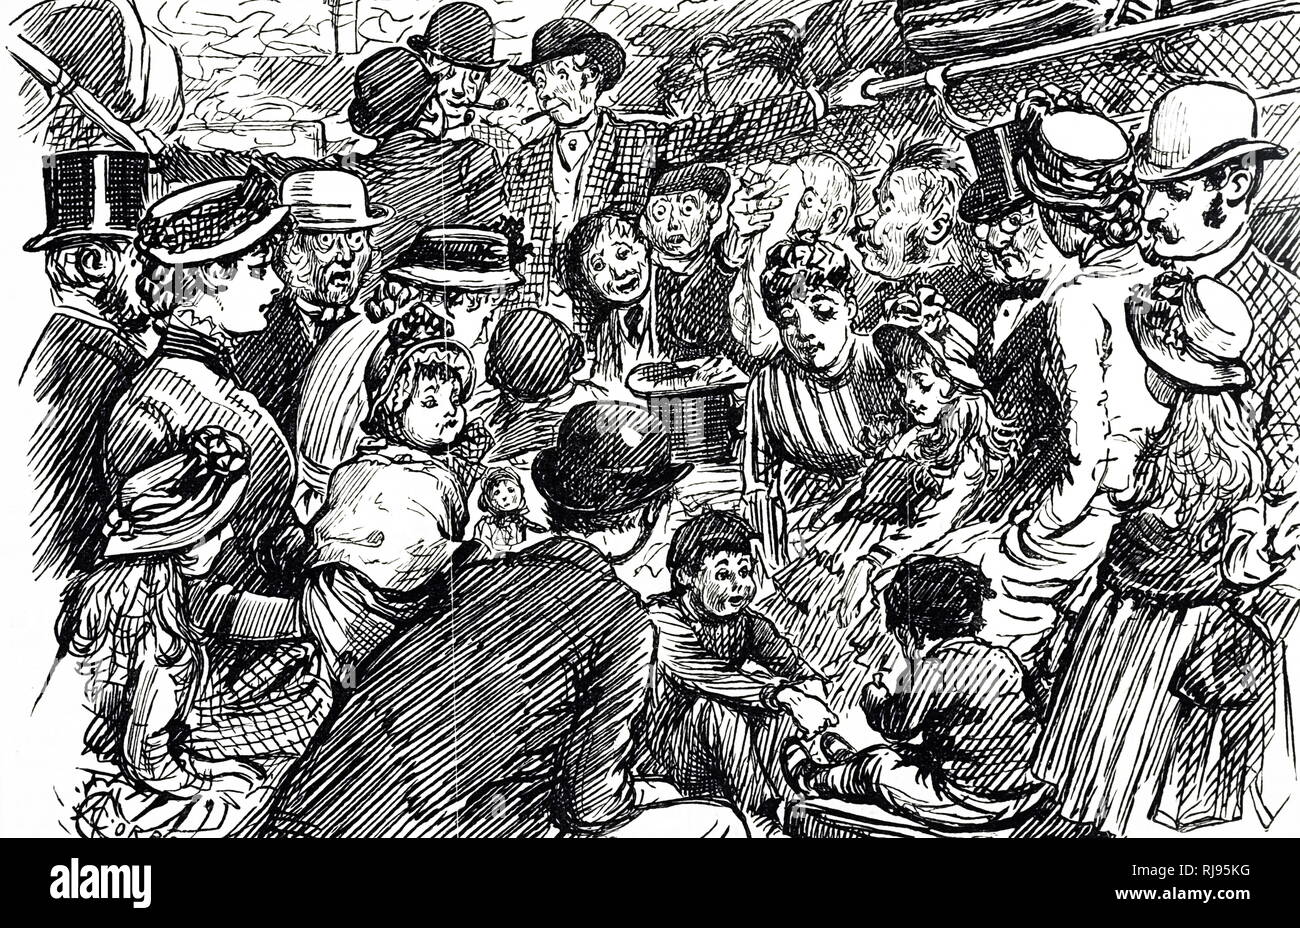 A cartoon depicting a second-class carriage in an excursion train. Dated 19th century - Stock Image